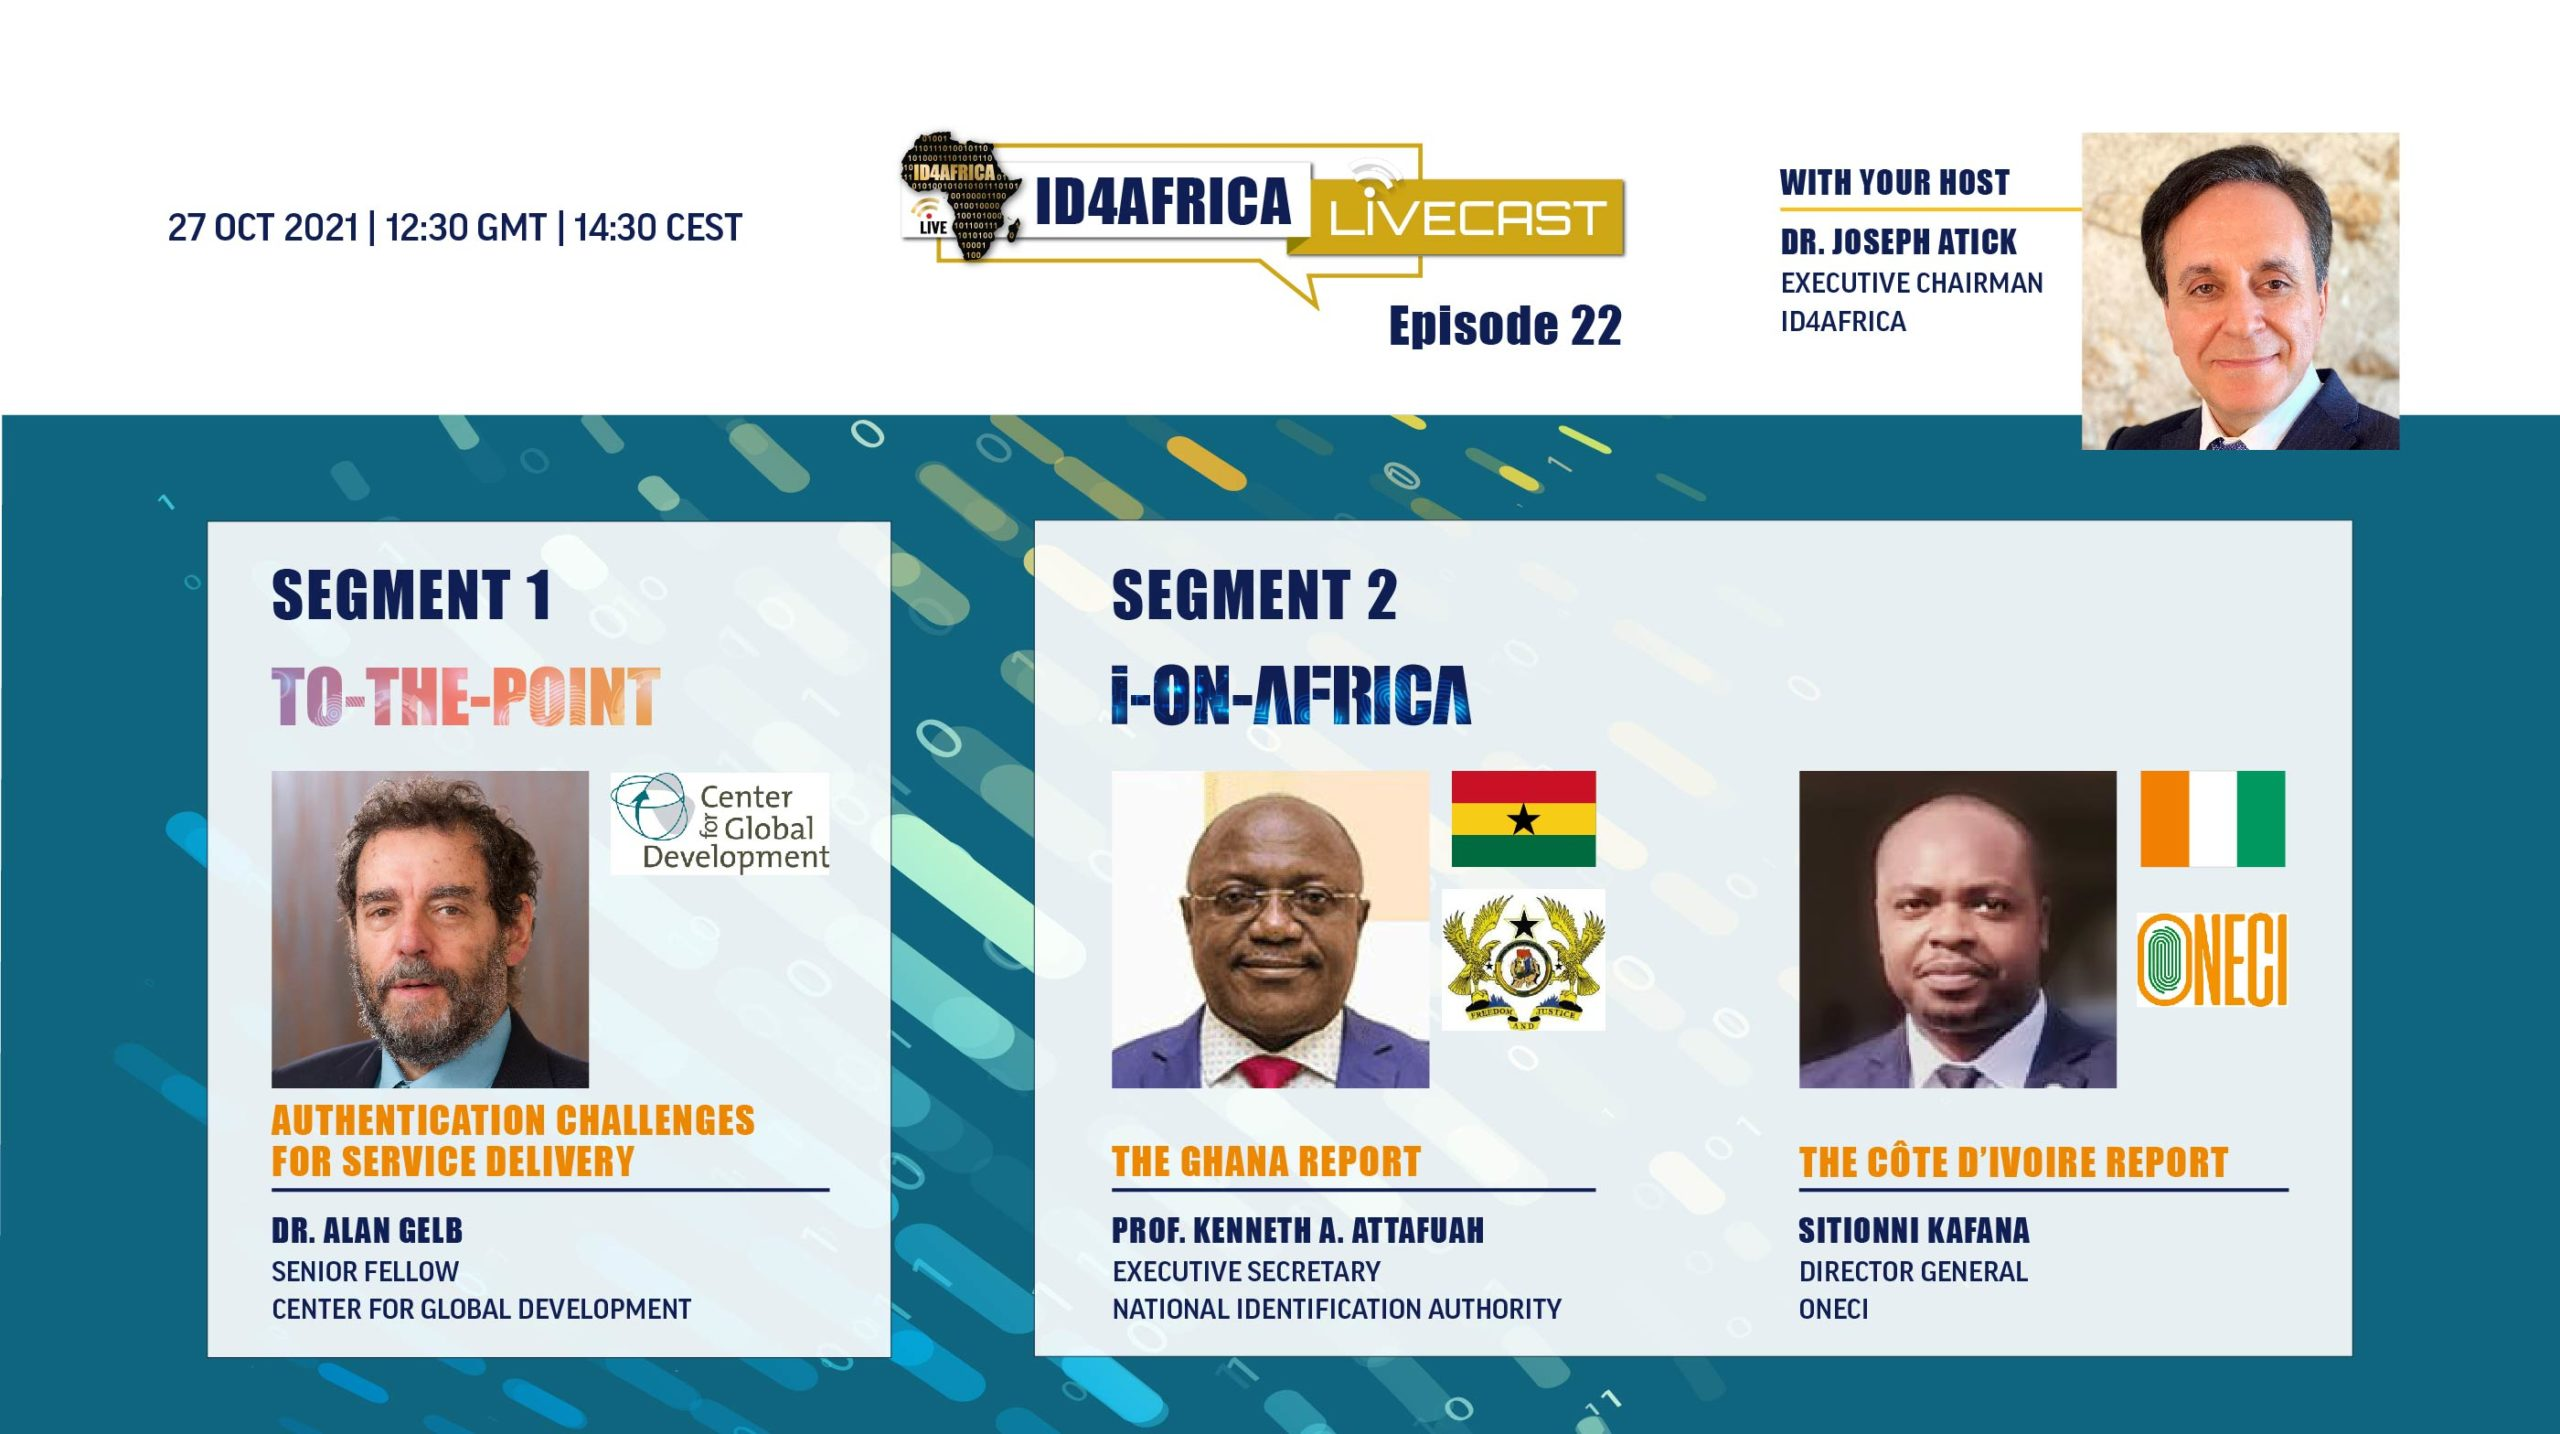 Register for our upcoming LiveCast with Ghana & Cote d'Ivoire